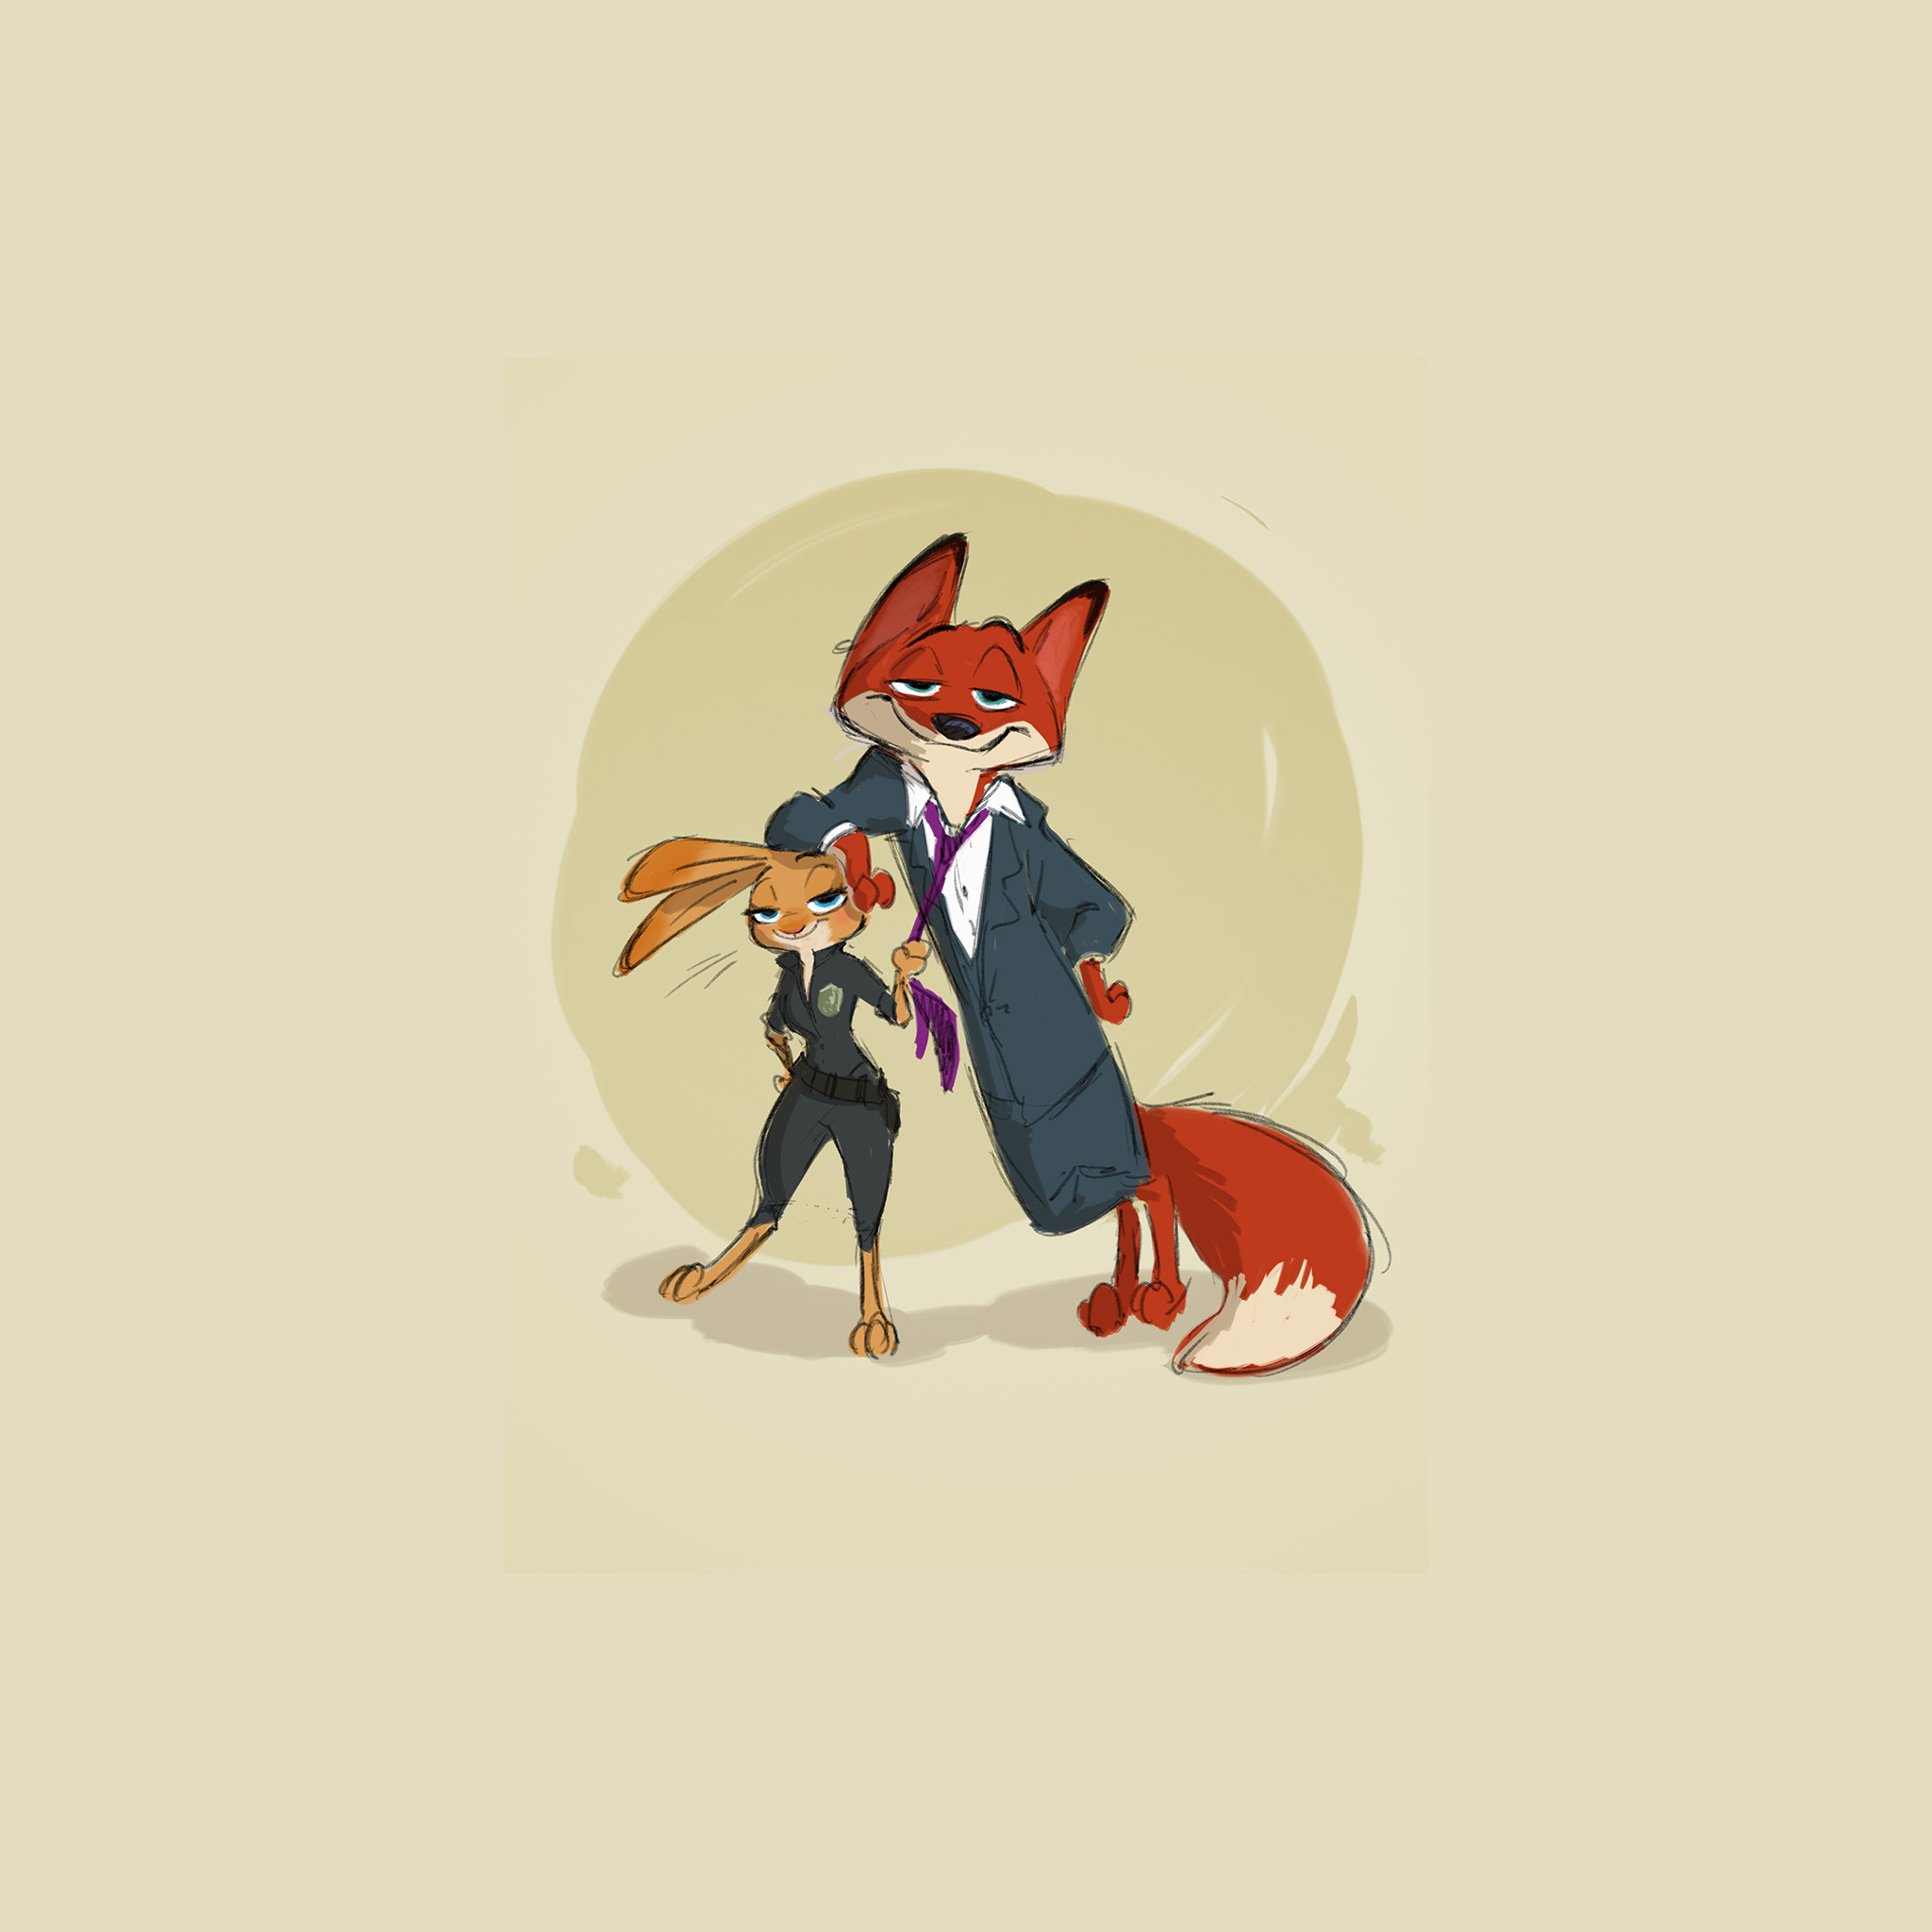 Au54 Zootopia Cute Animal Disney Judy Nick Illustration Art Wallpaper